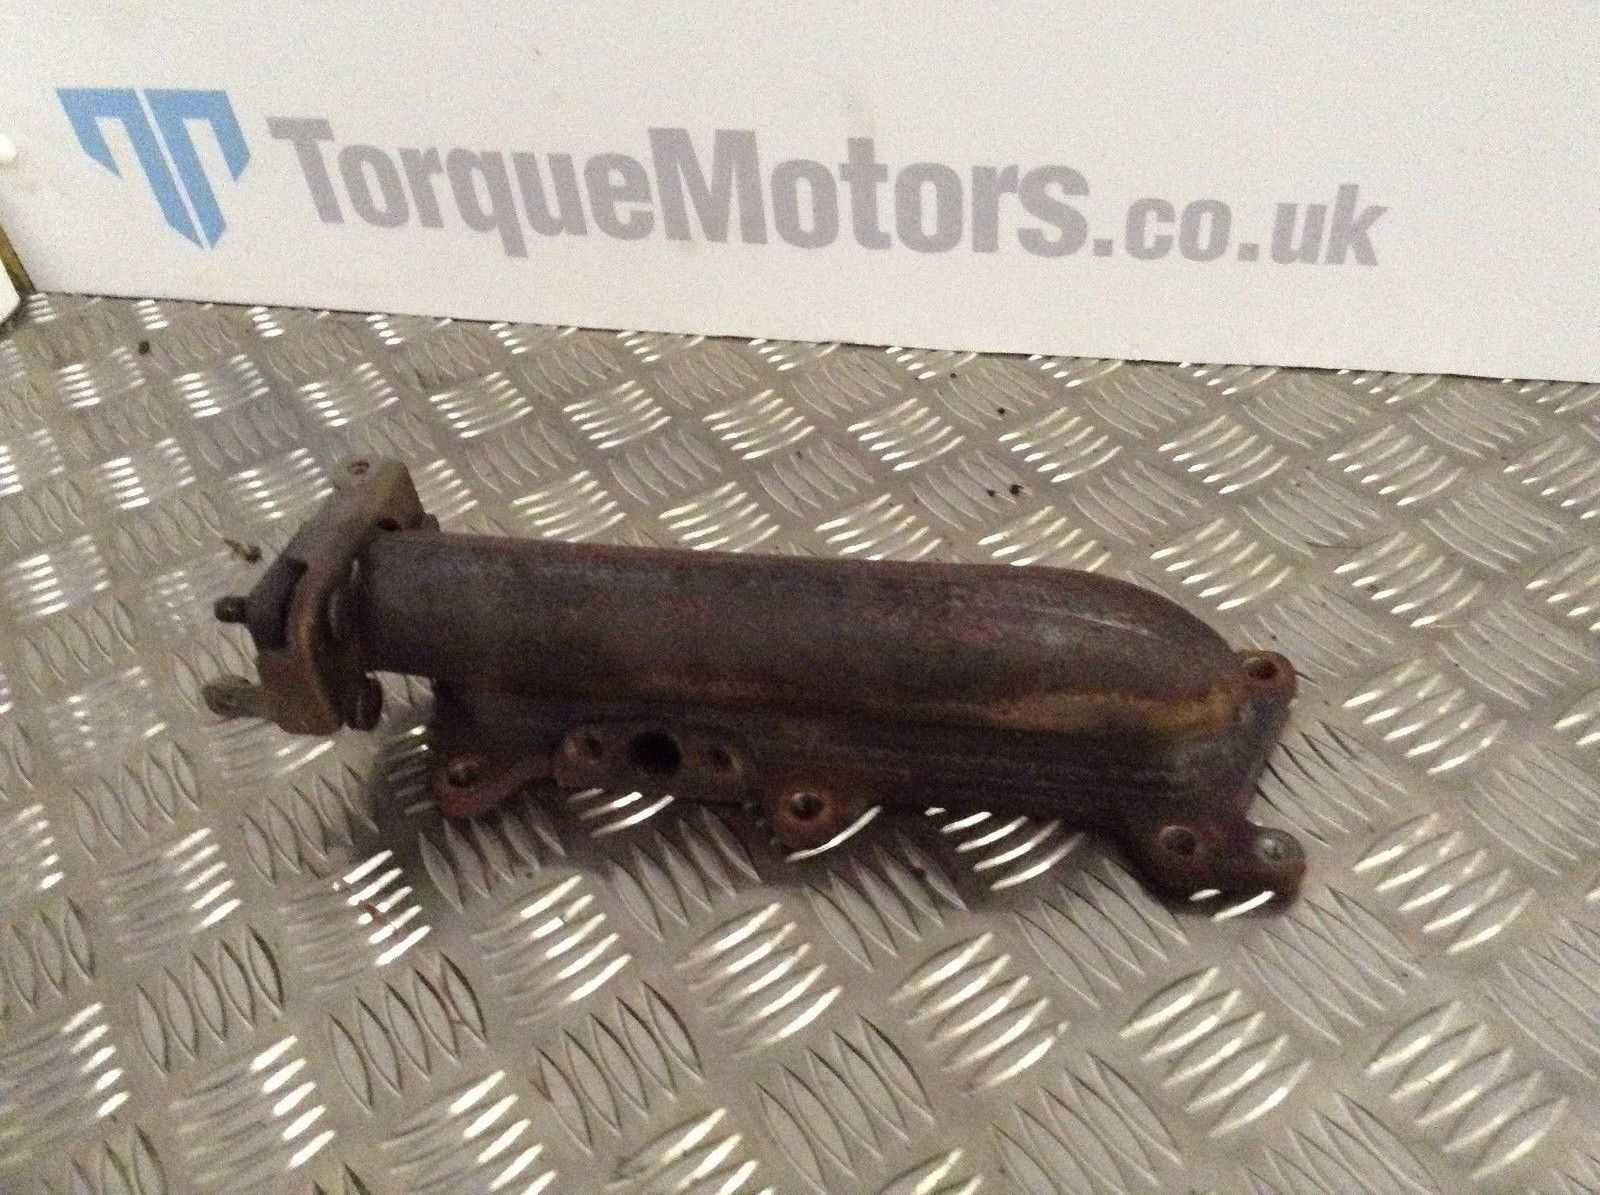 Vauxhall Z20leh Z20let Astra Vxr Etc Exhaust Manifold Studs With Aerotight Nuts!